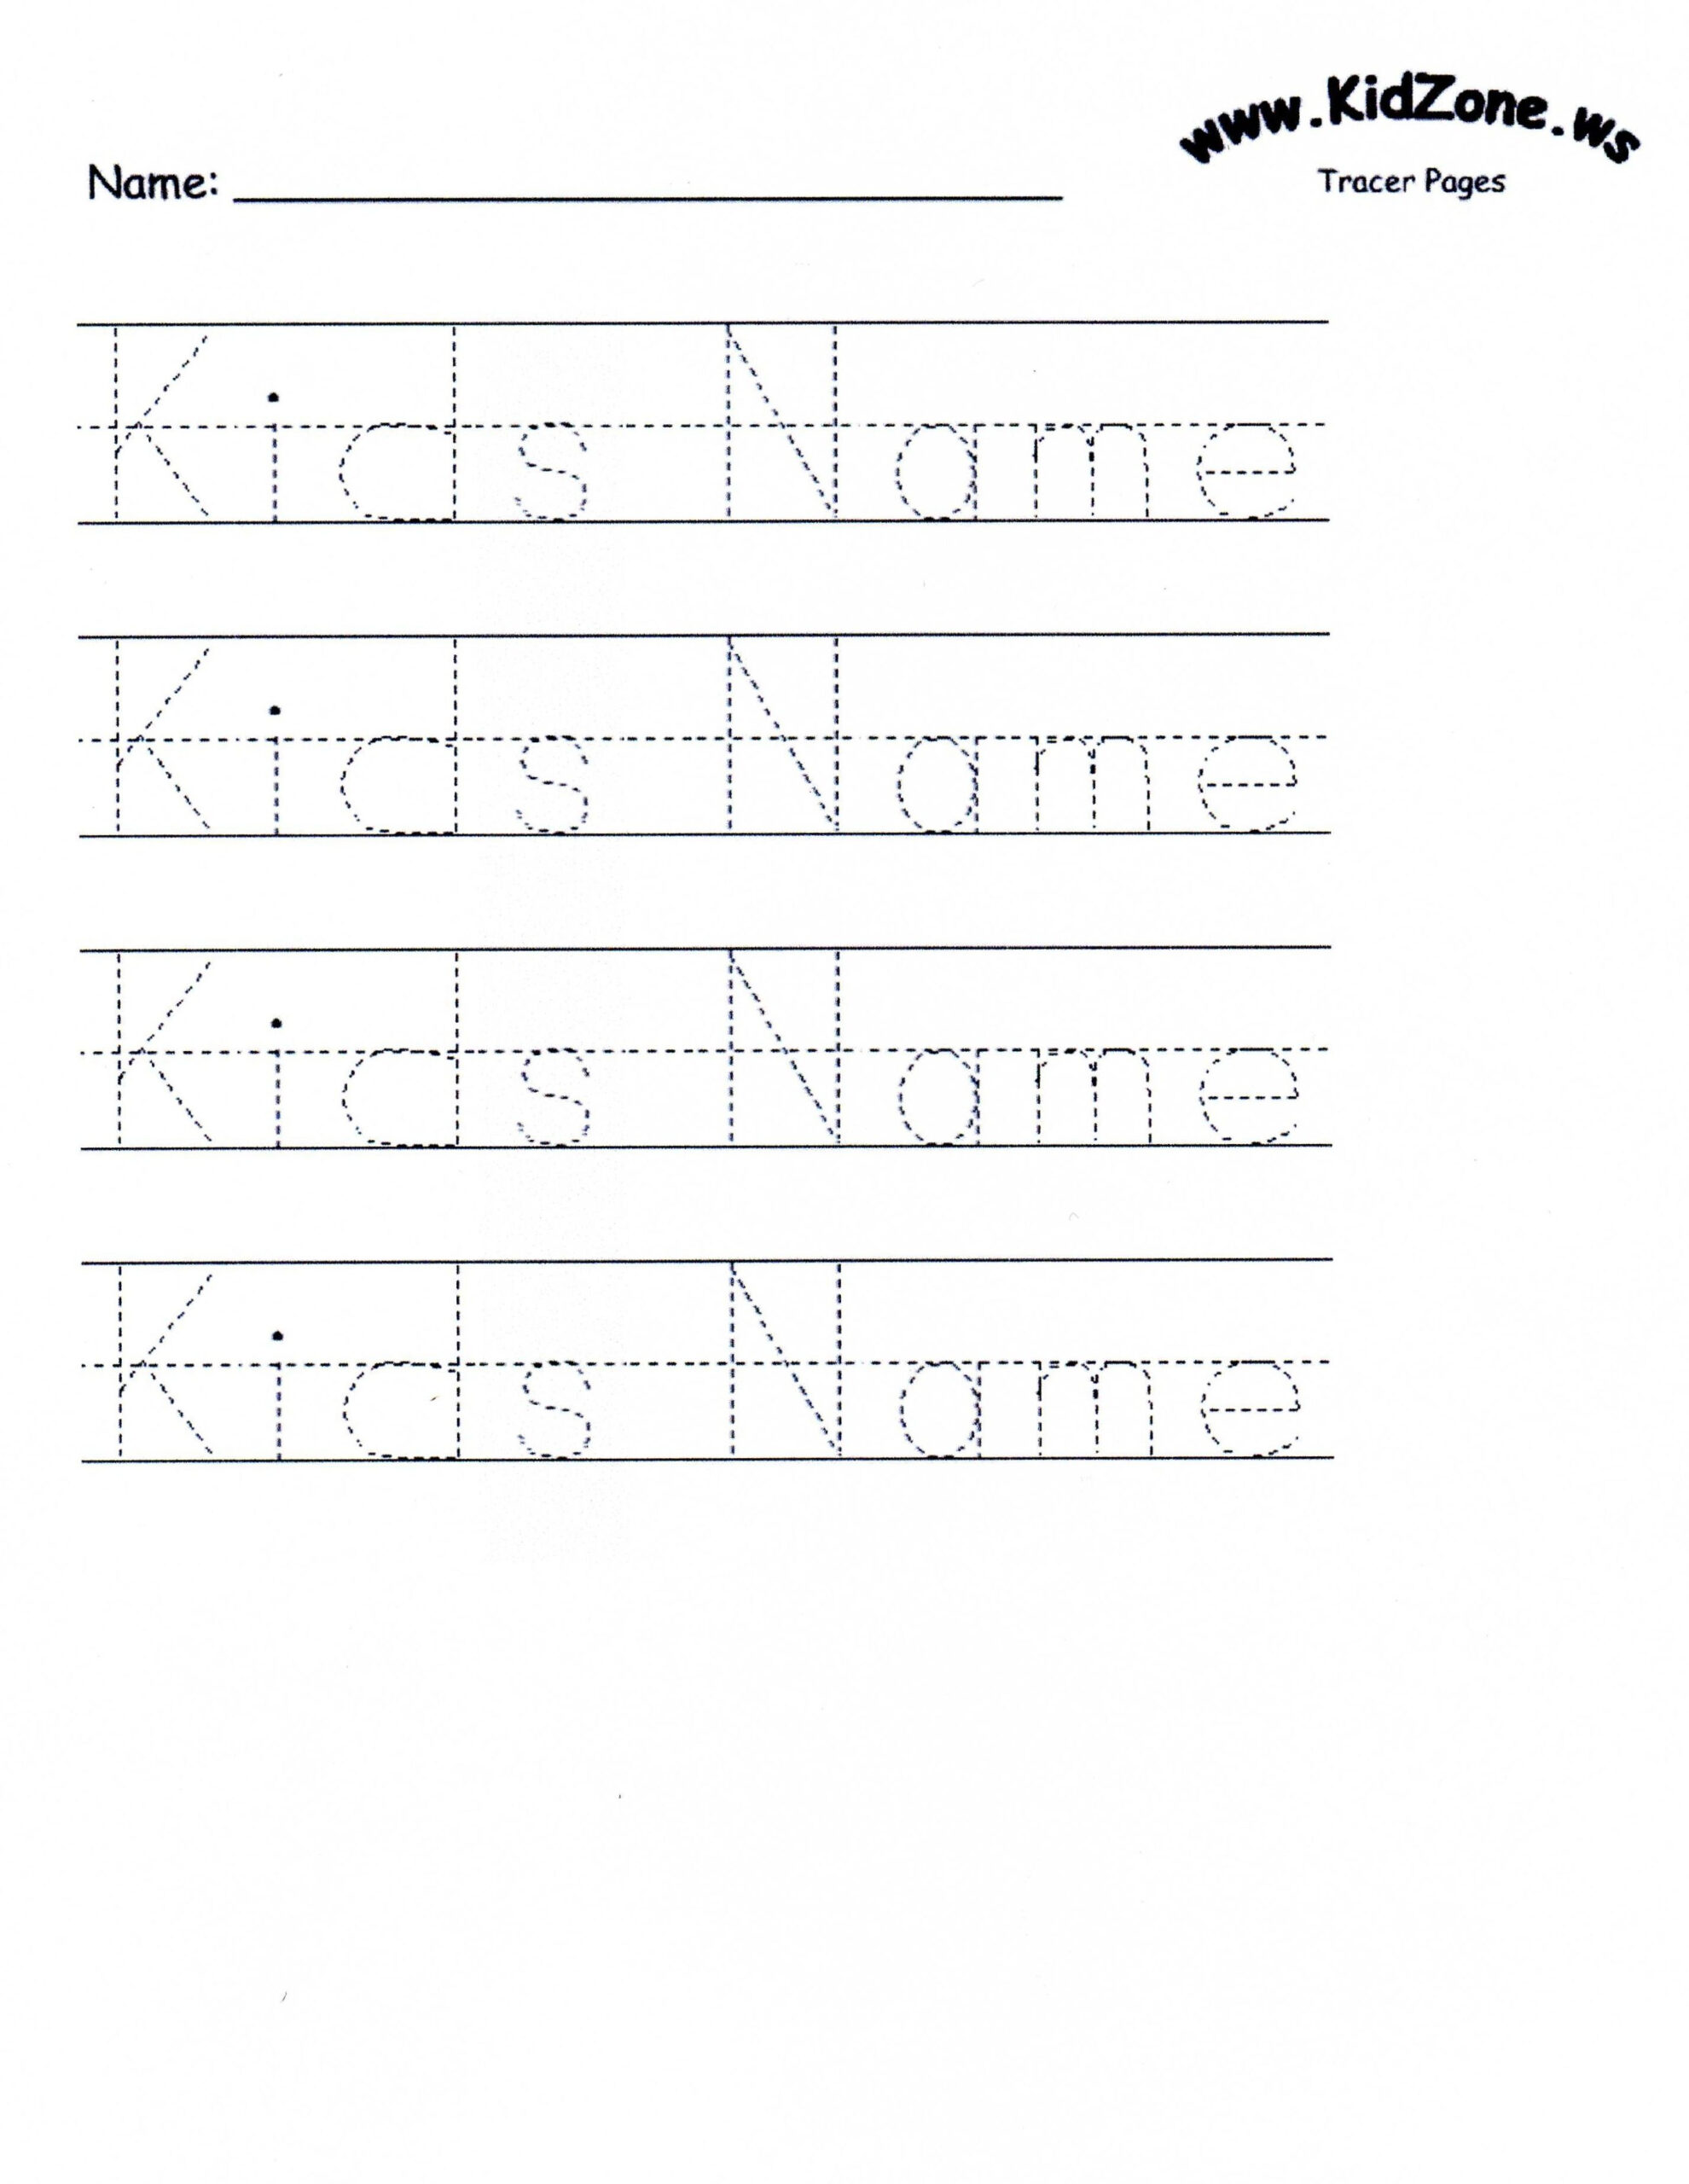 Customizable Printable Letter Pages | Name Tracing within Name.tracing